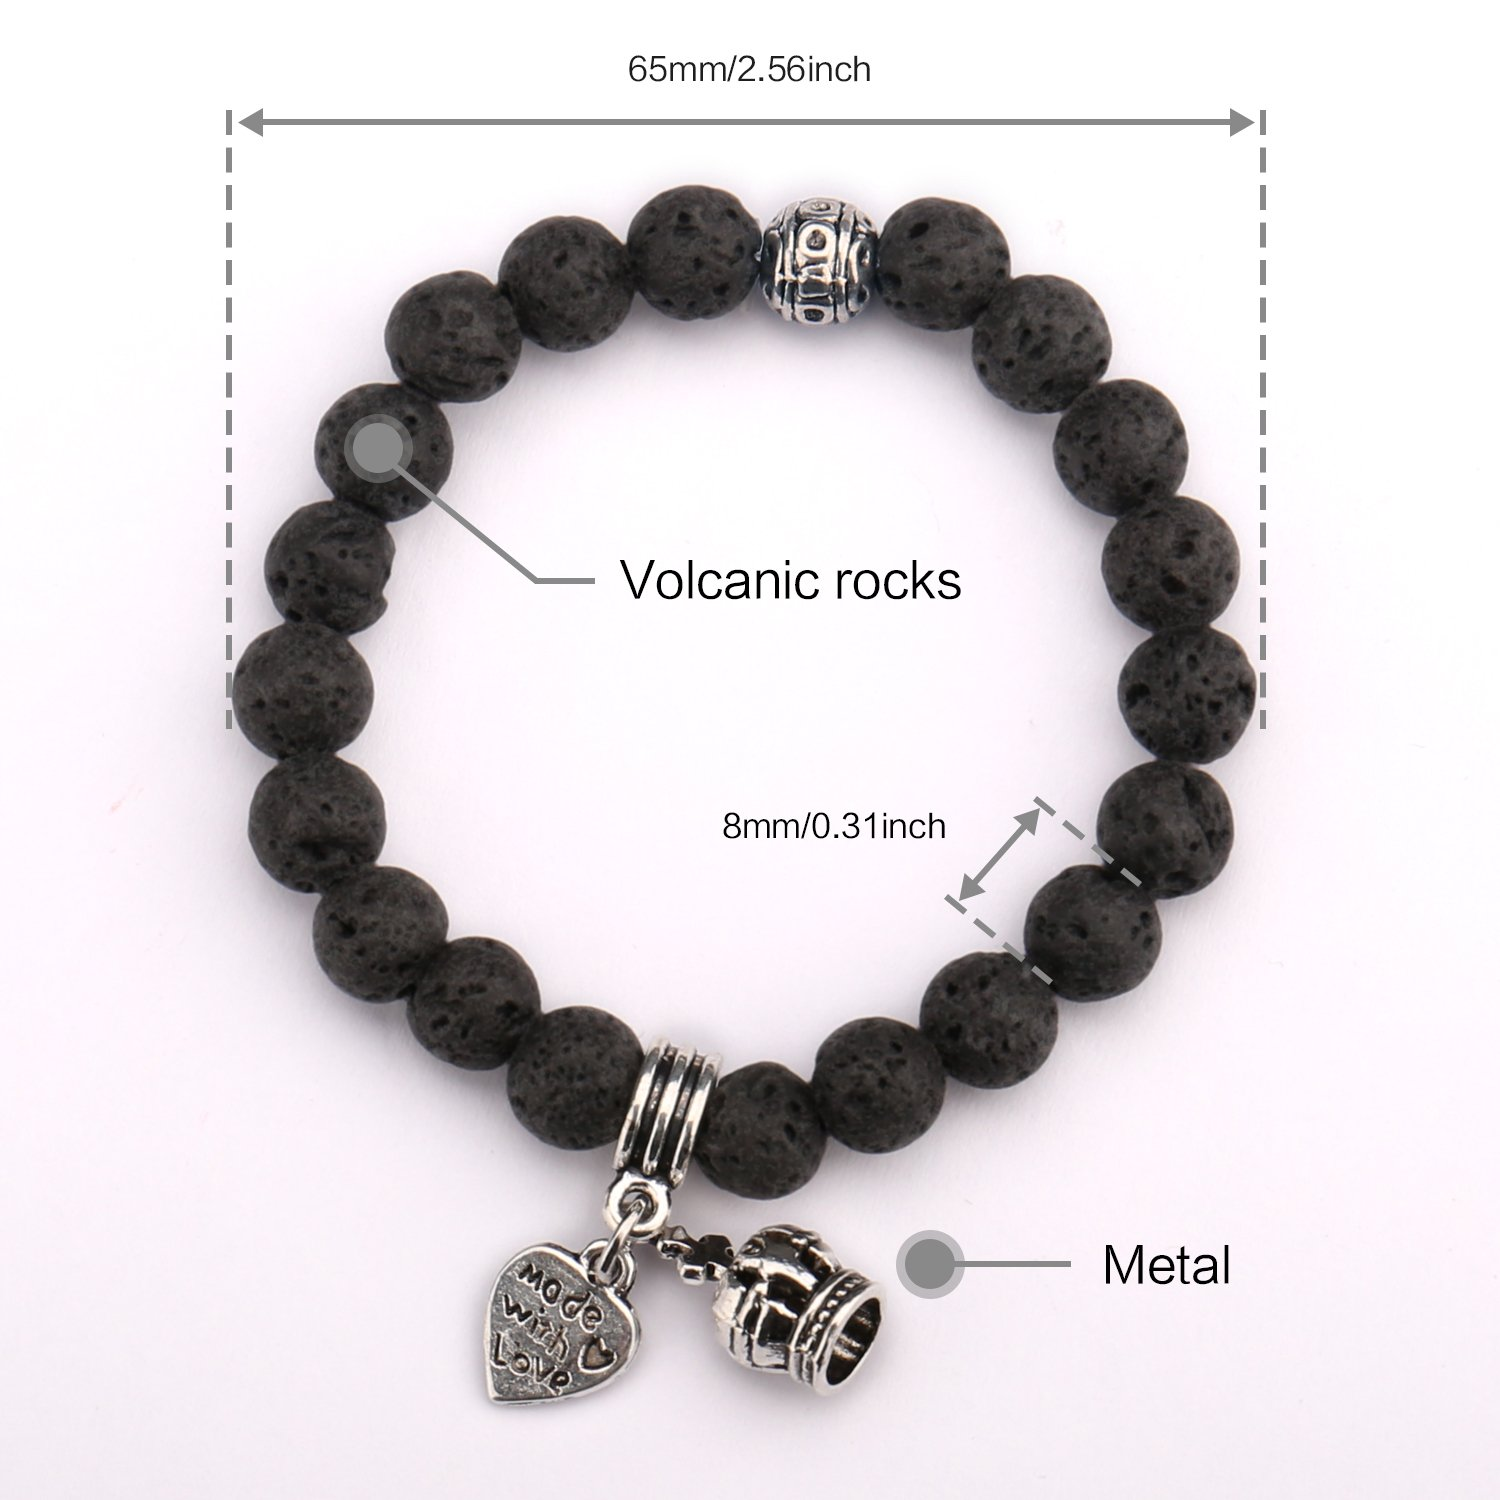 Beads Bracelet,UHIBROS Crown Heart Pendant Handmade Unisex Elastic Stretch Beaded Bracelet,Natural Agate Lava Rock Beads Bangle